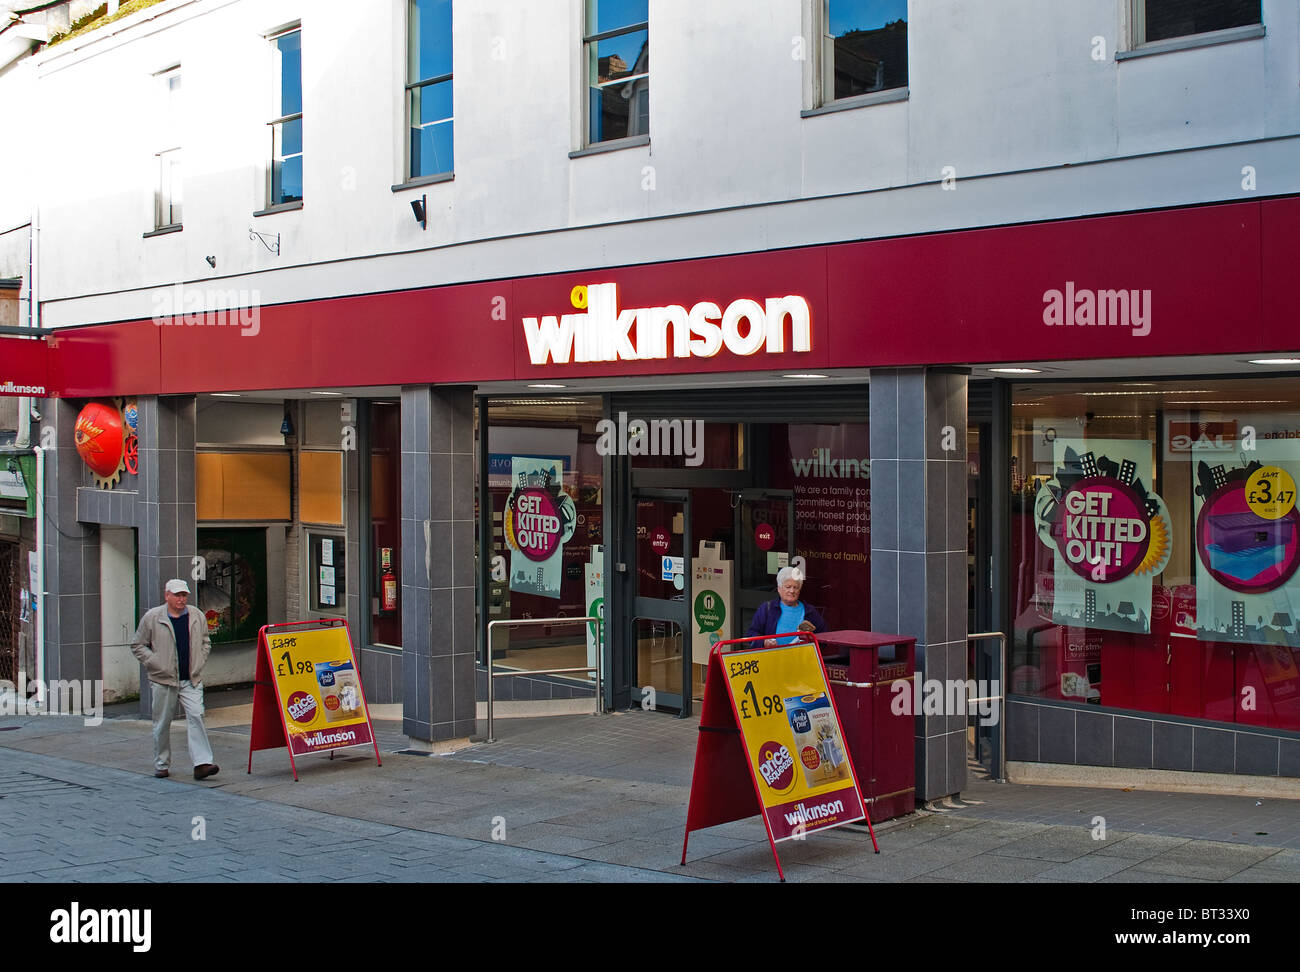 a wilkinson's discount store in camborne, cornwall, uk - Stock Image